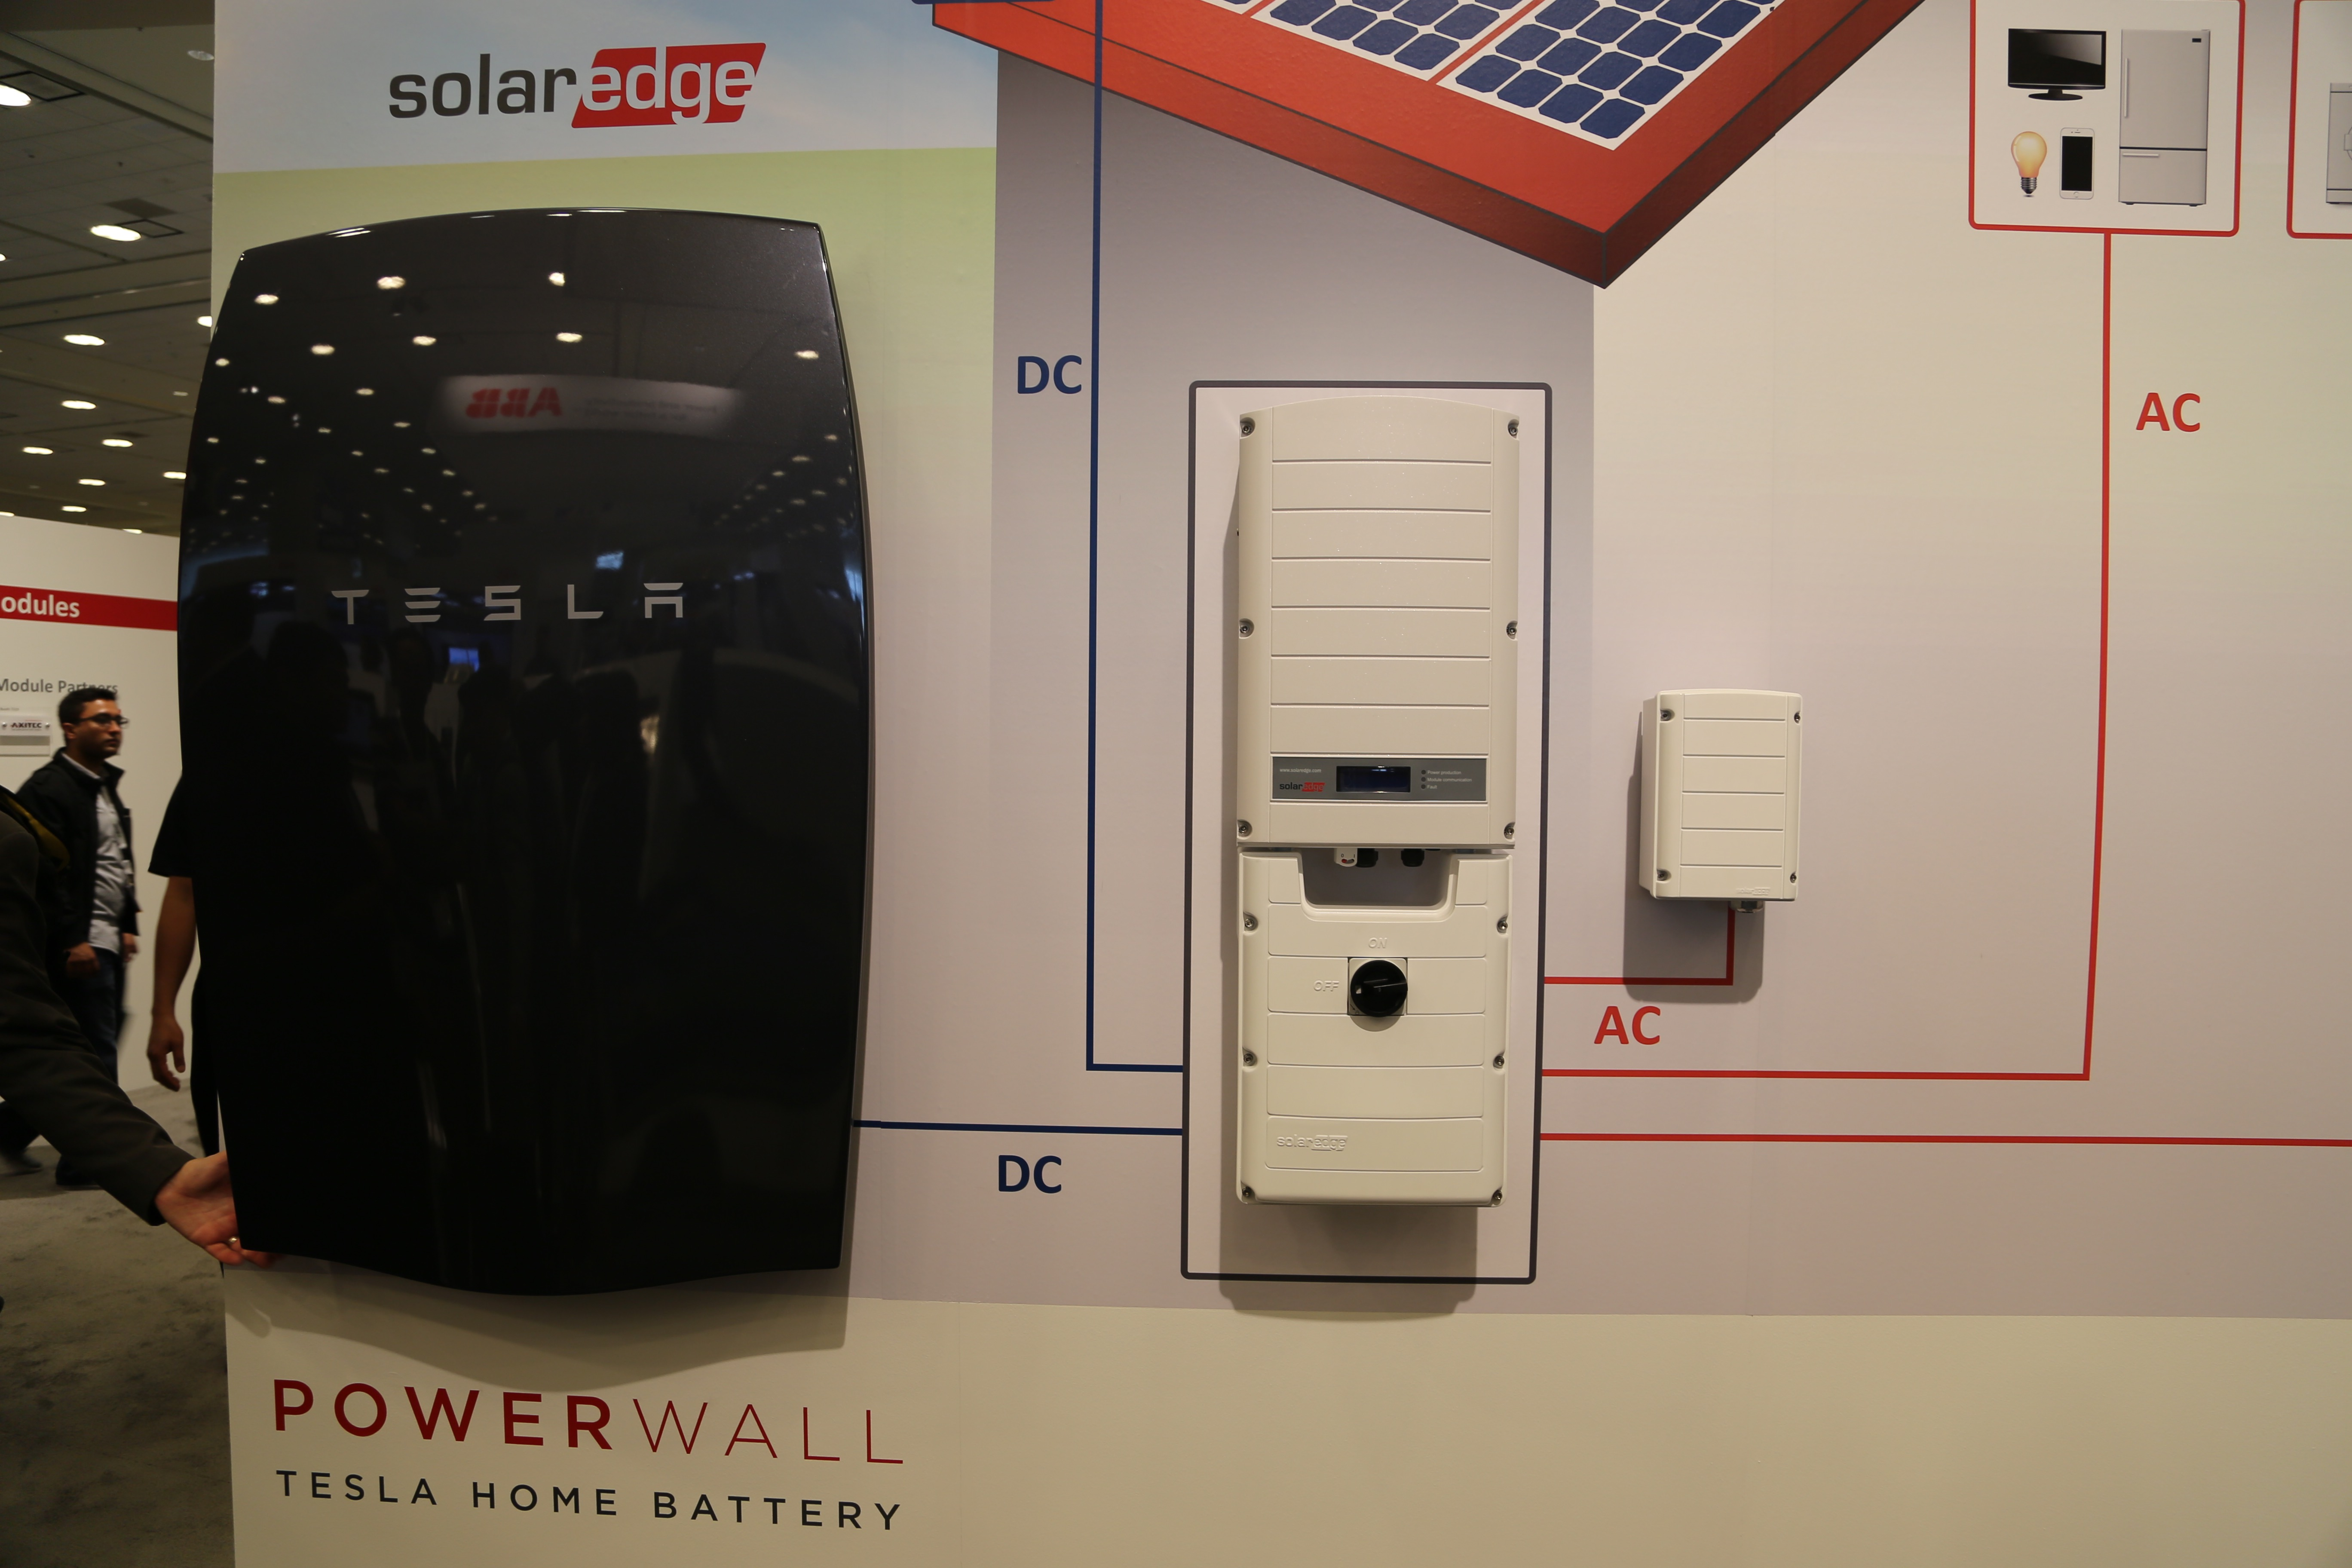 Tesla's Powerwall home battery, on display at Intersolar 2015, at the SolarEdge booth.